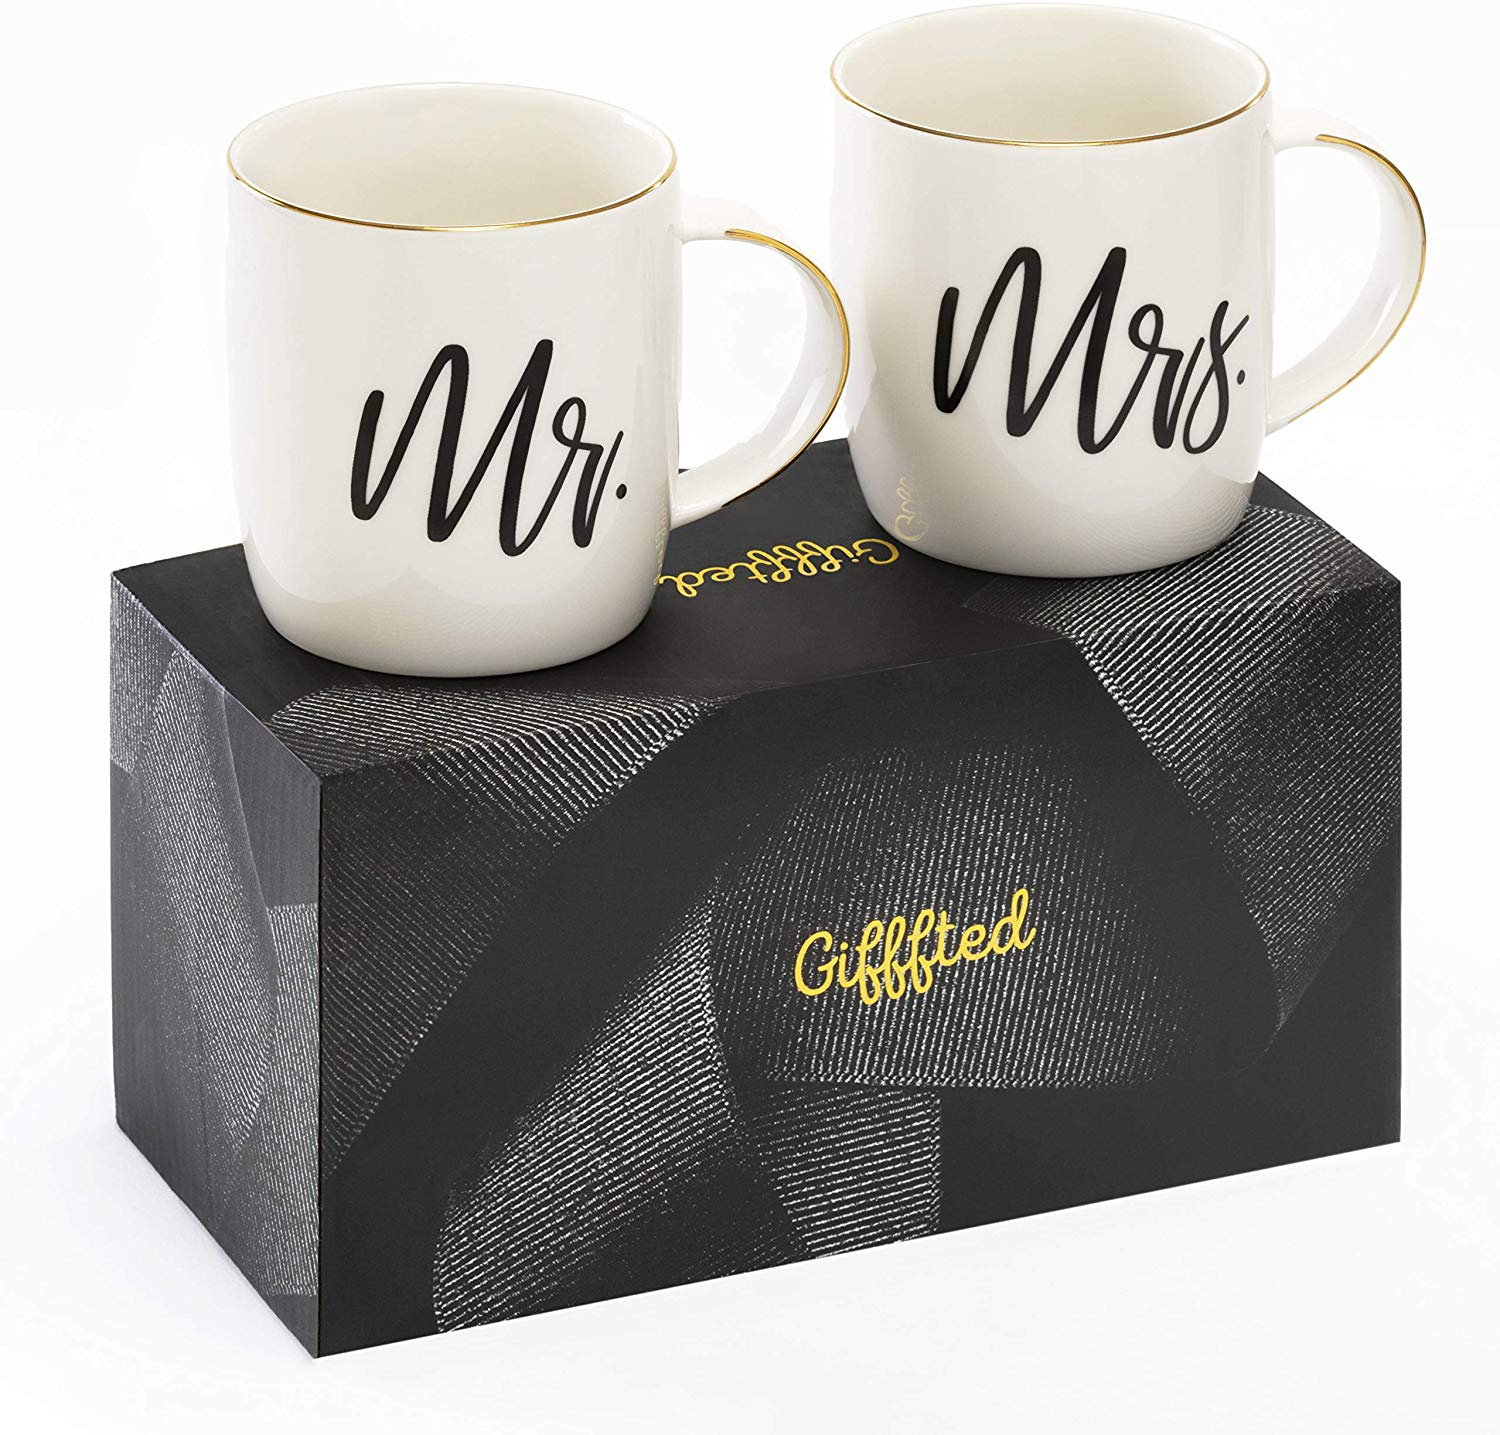 Gifffted Mr and Mrs Mugs, Unique Wedding Gift For The Couple, Gifts For Engagement, Anniversary, His and Hers, Bride and Groom, Great Valentines and Christmas Gifts For Couples, Set of 2 Coffee Mugs